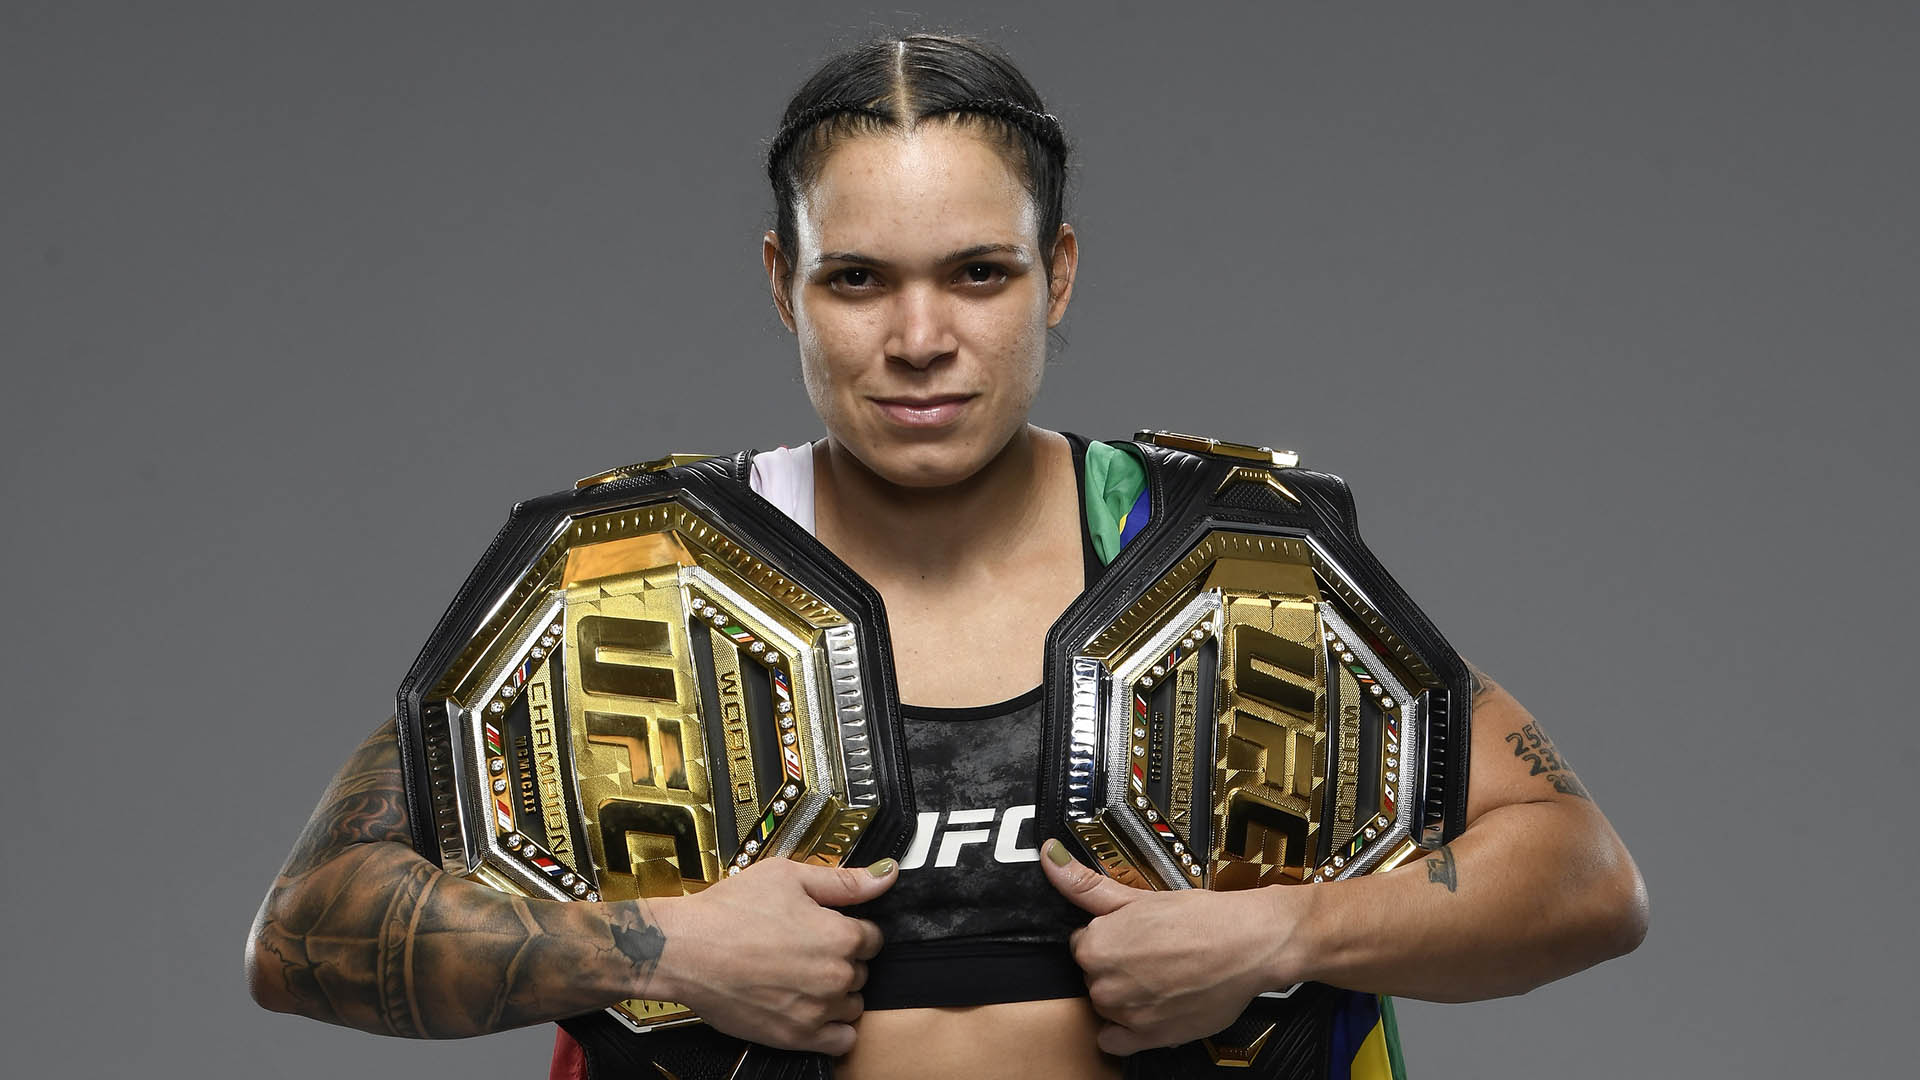 Amanda Nunes of Brazil poses for a portrait after her victory during the UFC 259 event at UFC APEX on March 06, 2021 in Las Vegas, Nevada. (Photo by Mike Roach/Zuffa LLC)